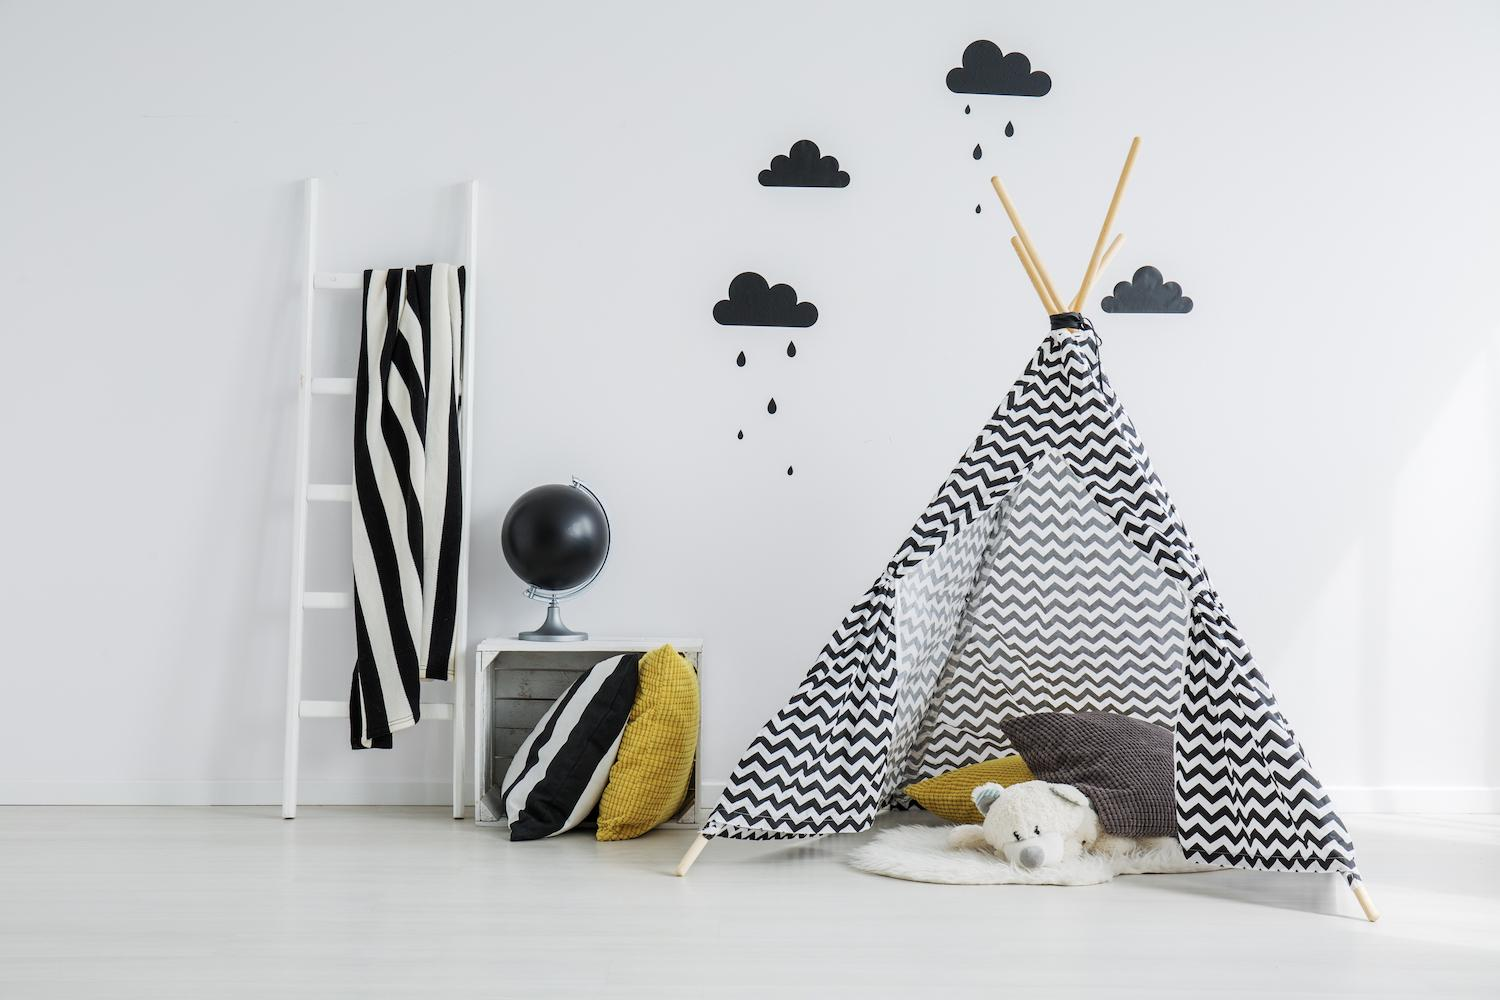 vu sur pinterest comment fabriquer une tente canadienne ou un tipi pour les enfants femmes d. Black Bedroom Furniture Sets. Home Design Ideas